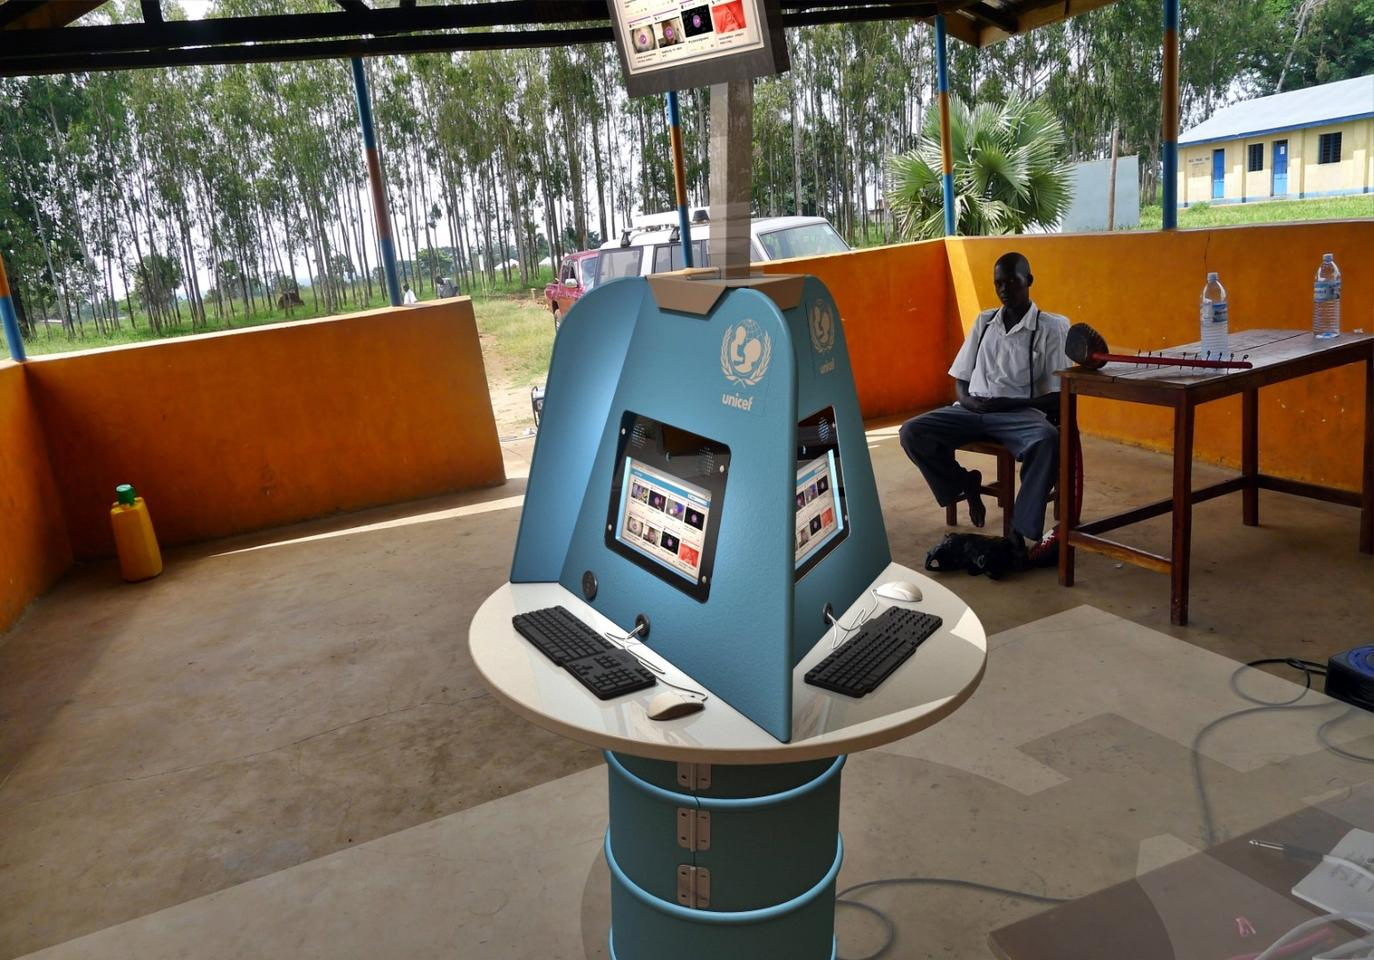 The new Digital Drum 2.0 from UNICEF and partners